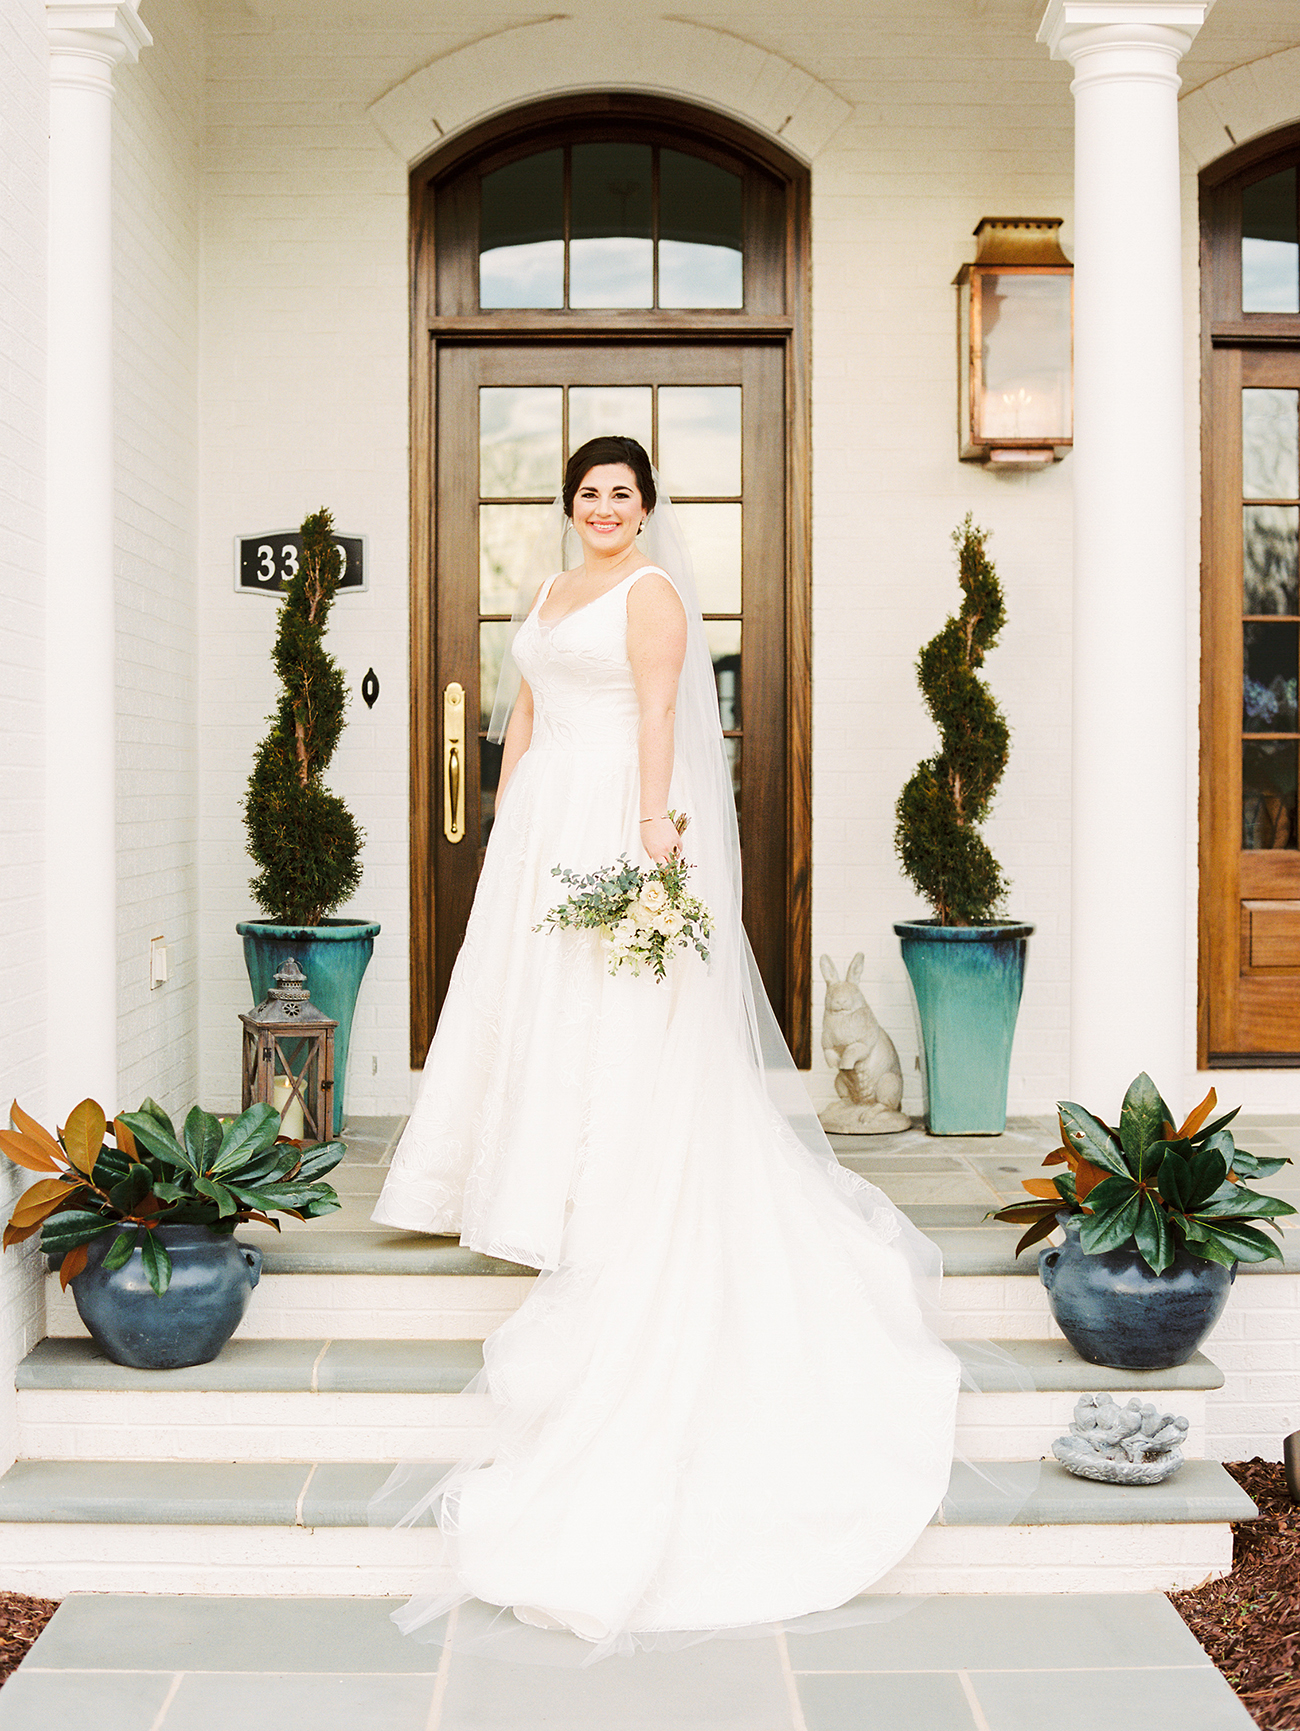 nrp-nancy-ashleydavisbridals-2012